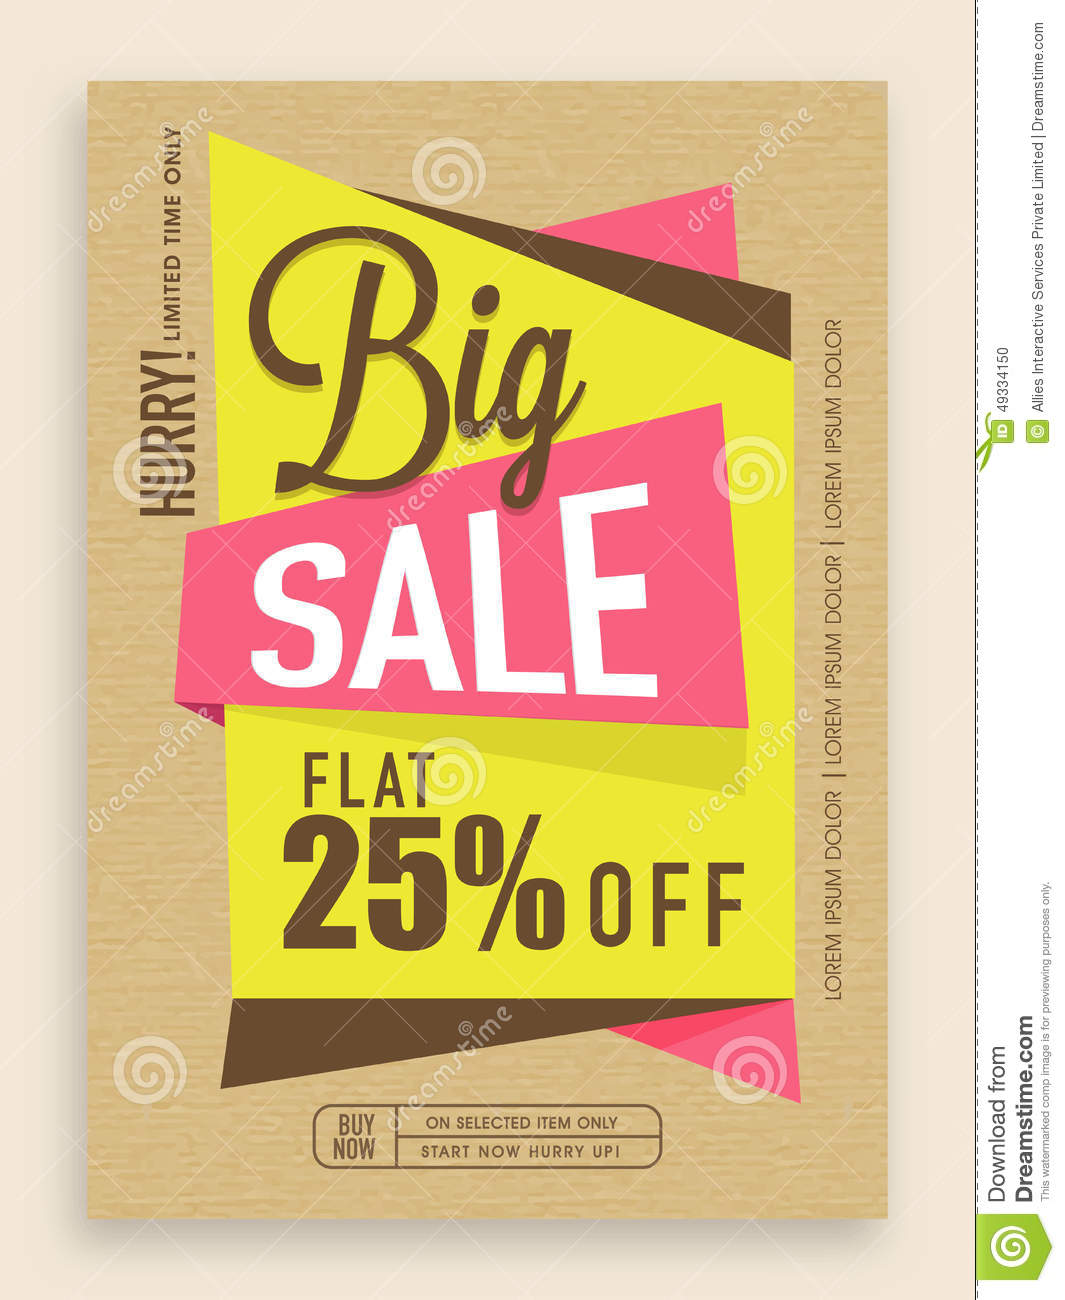 Big Sale Flyer, Template Or Banner Design. Stock Photo - Image ...